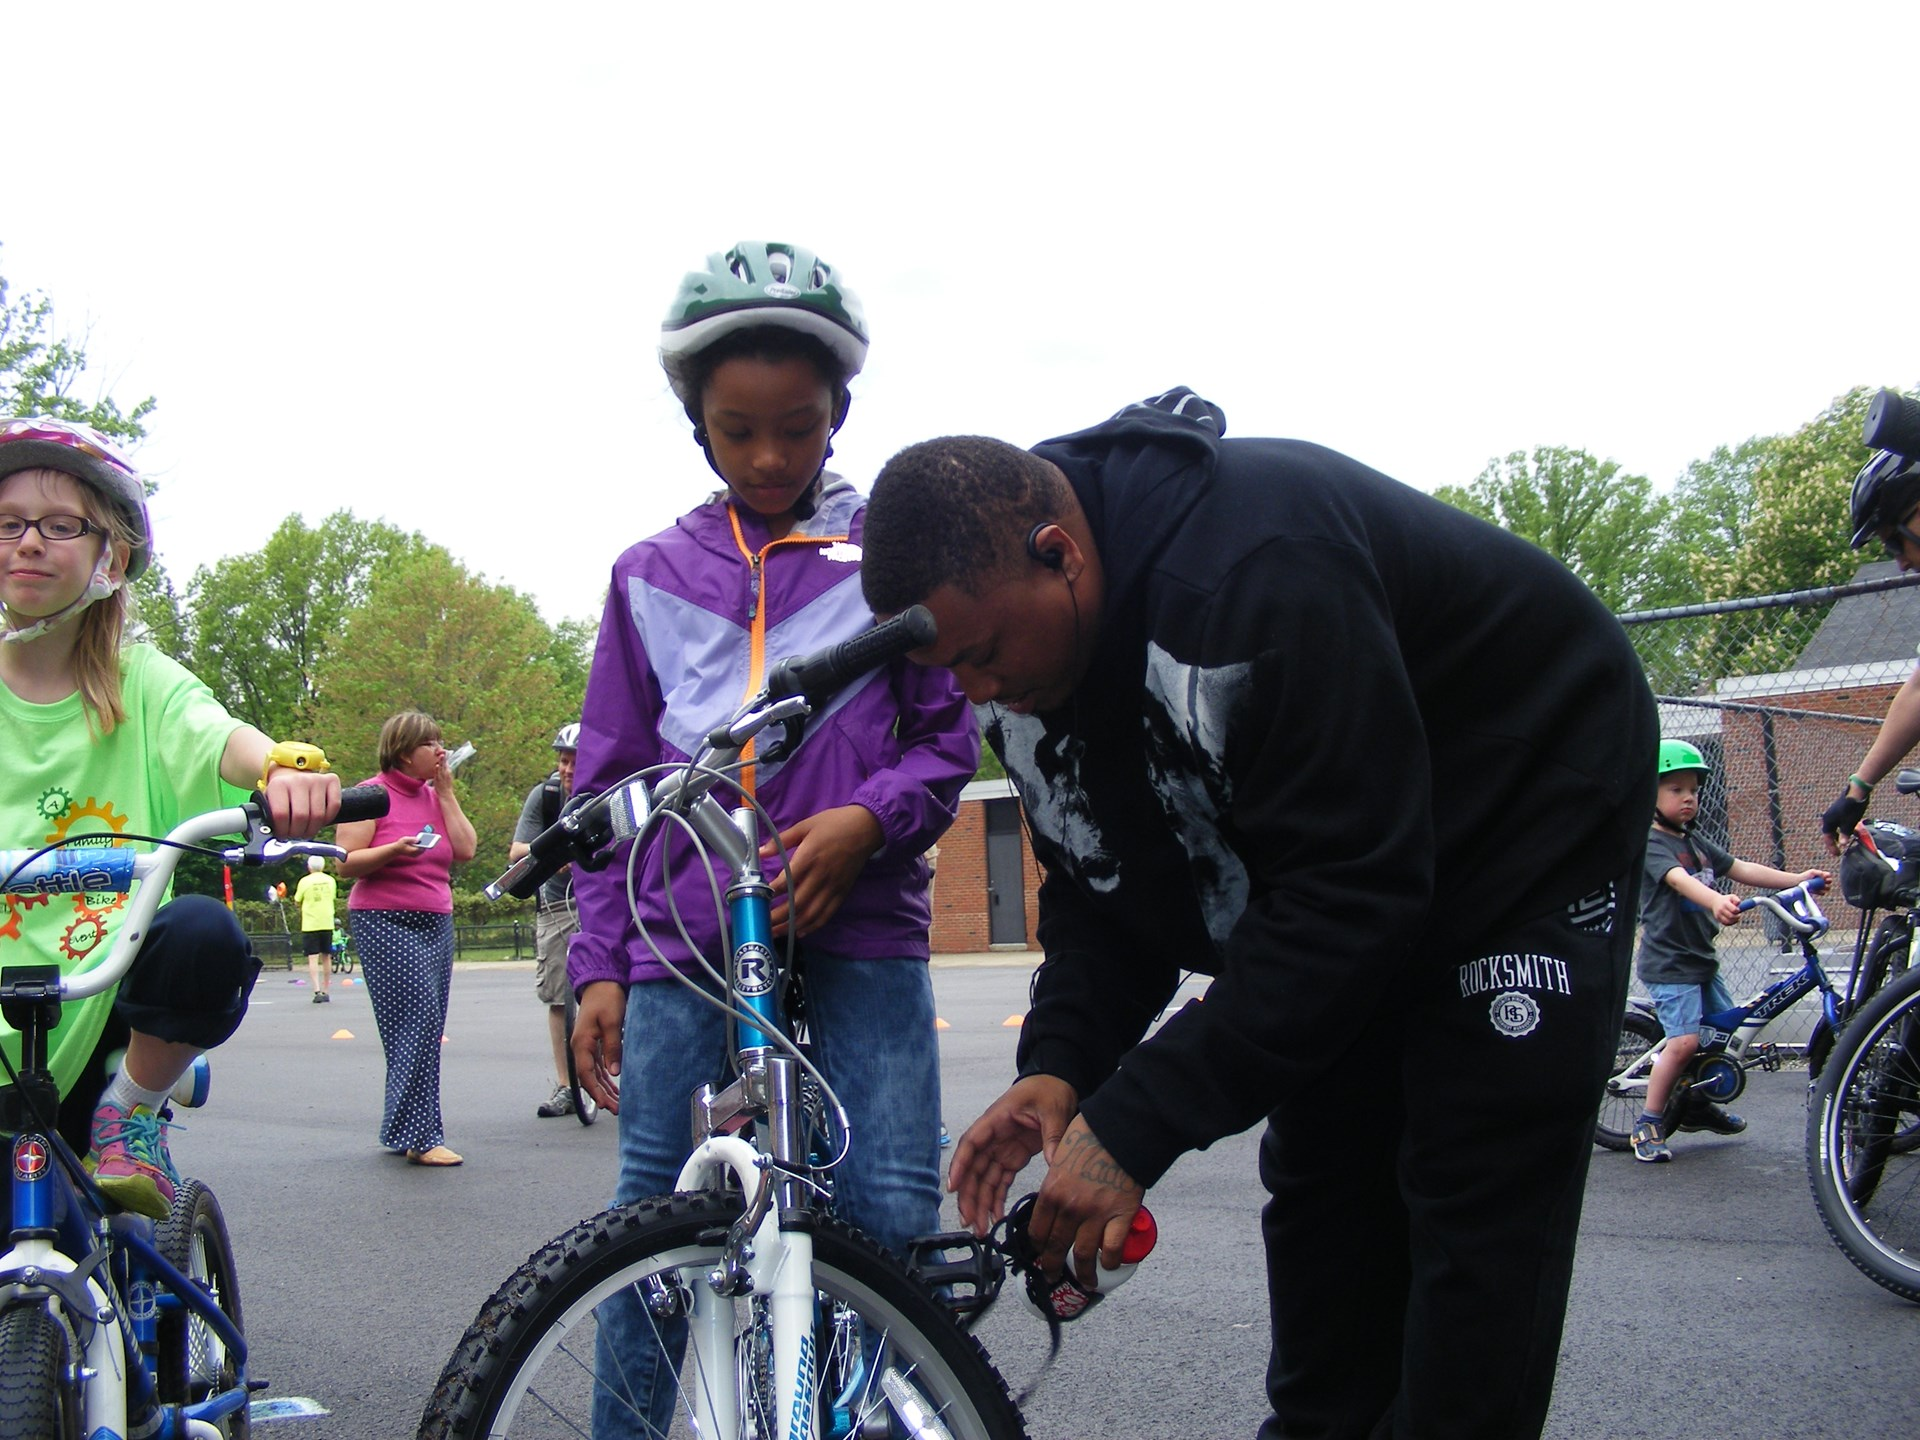 Dad fixes a bike before the activities